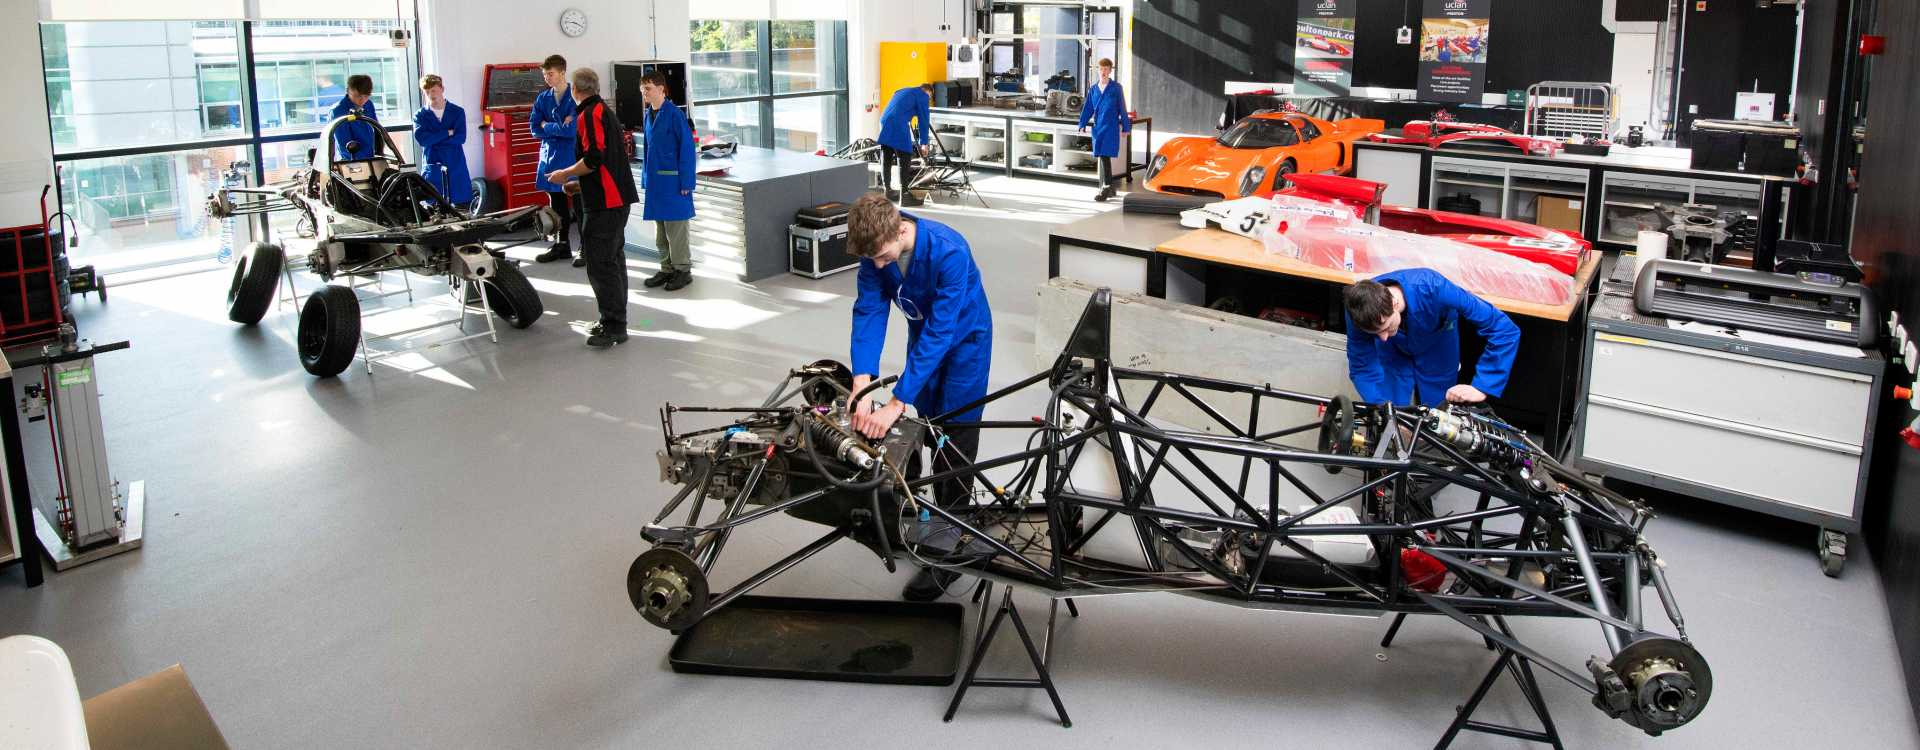 Motorsports and Air Vehicle Lab - image courtesy of the University of Central Lancashire (UCLan).